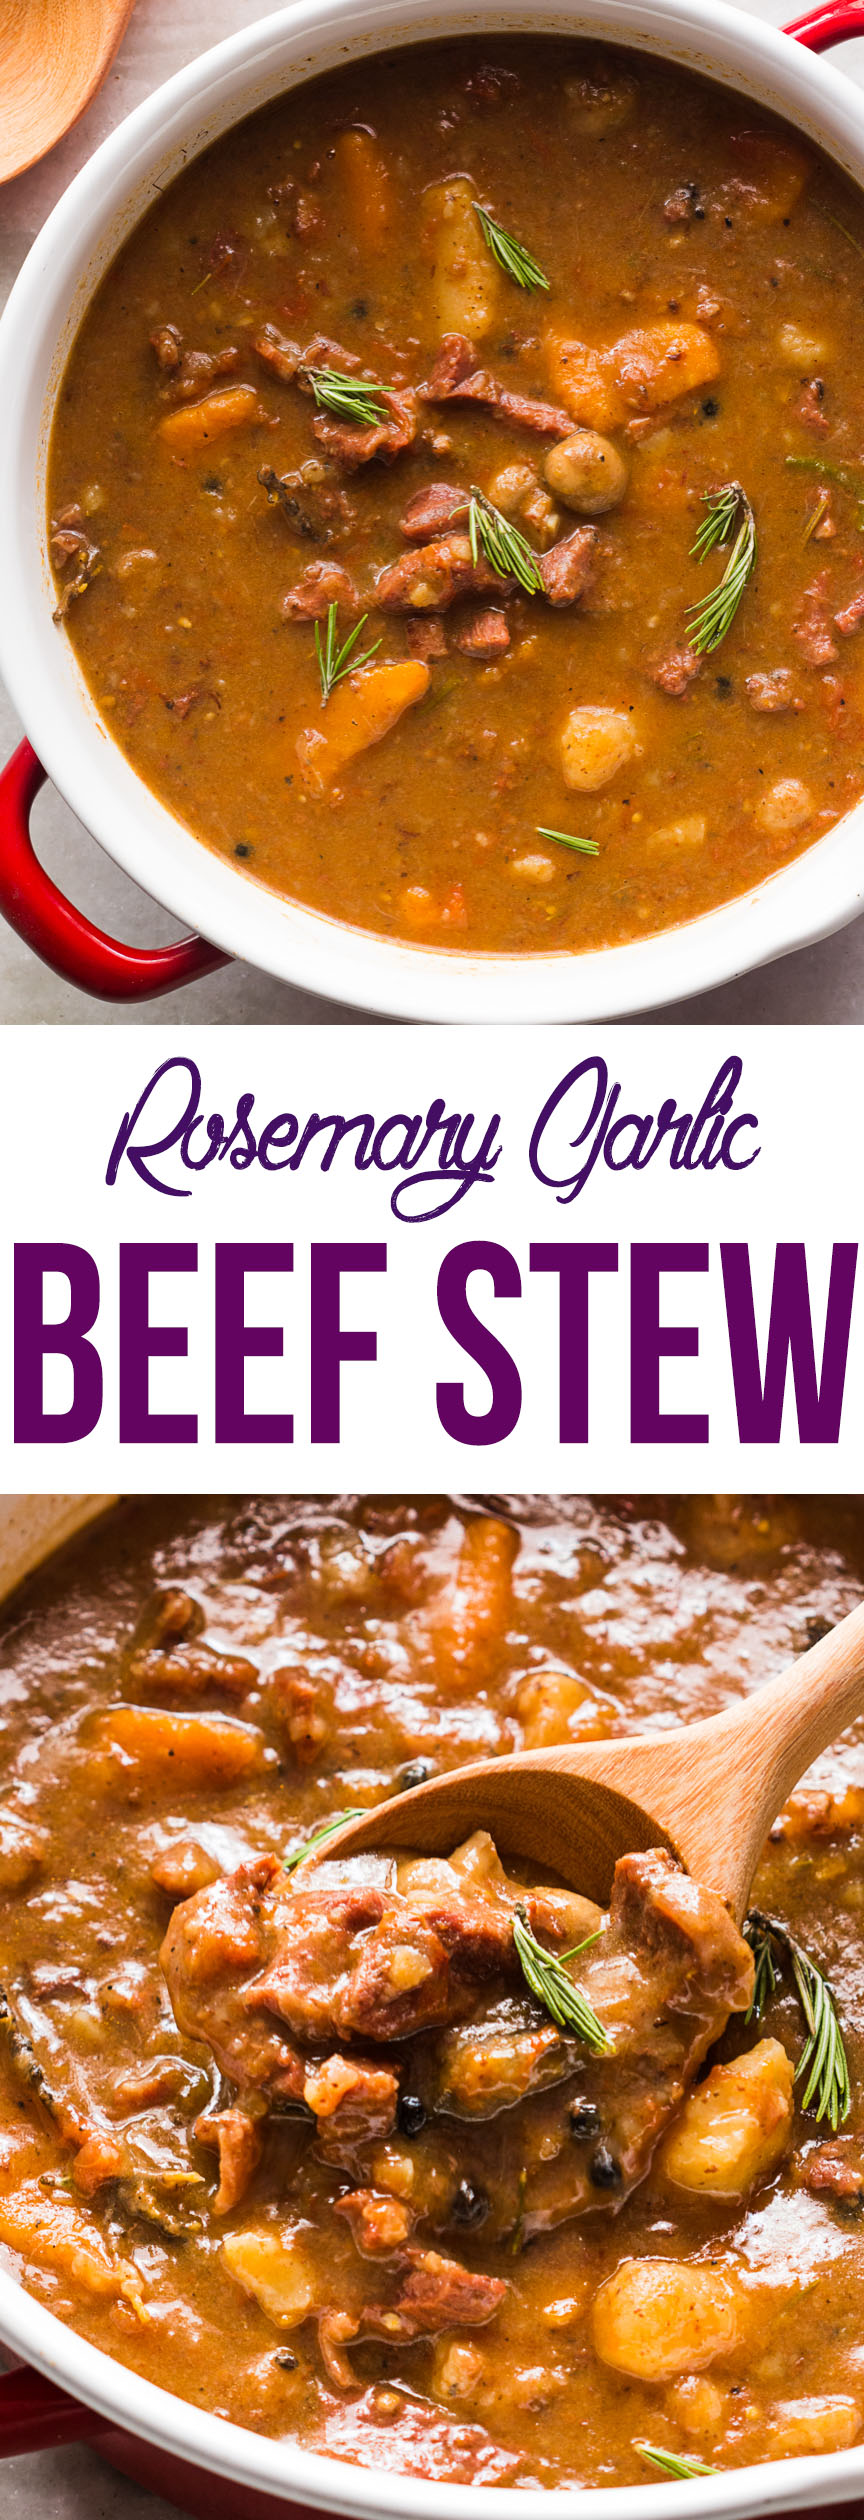 rosemary garlic beef stew pin